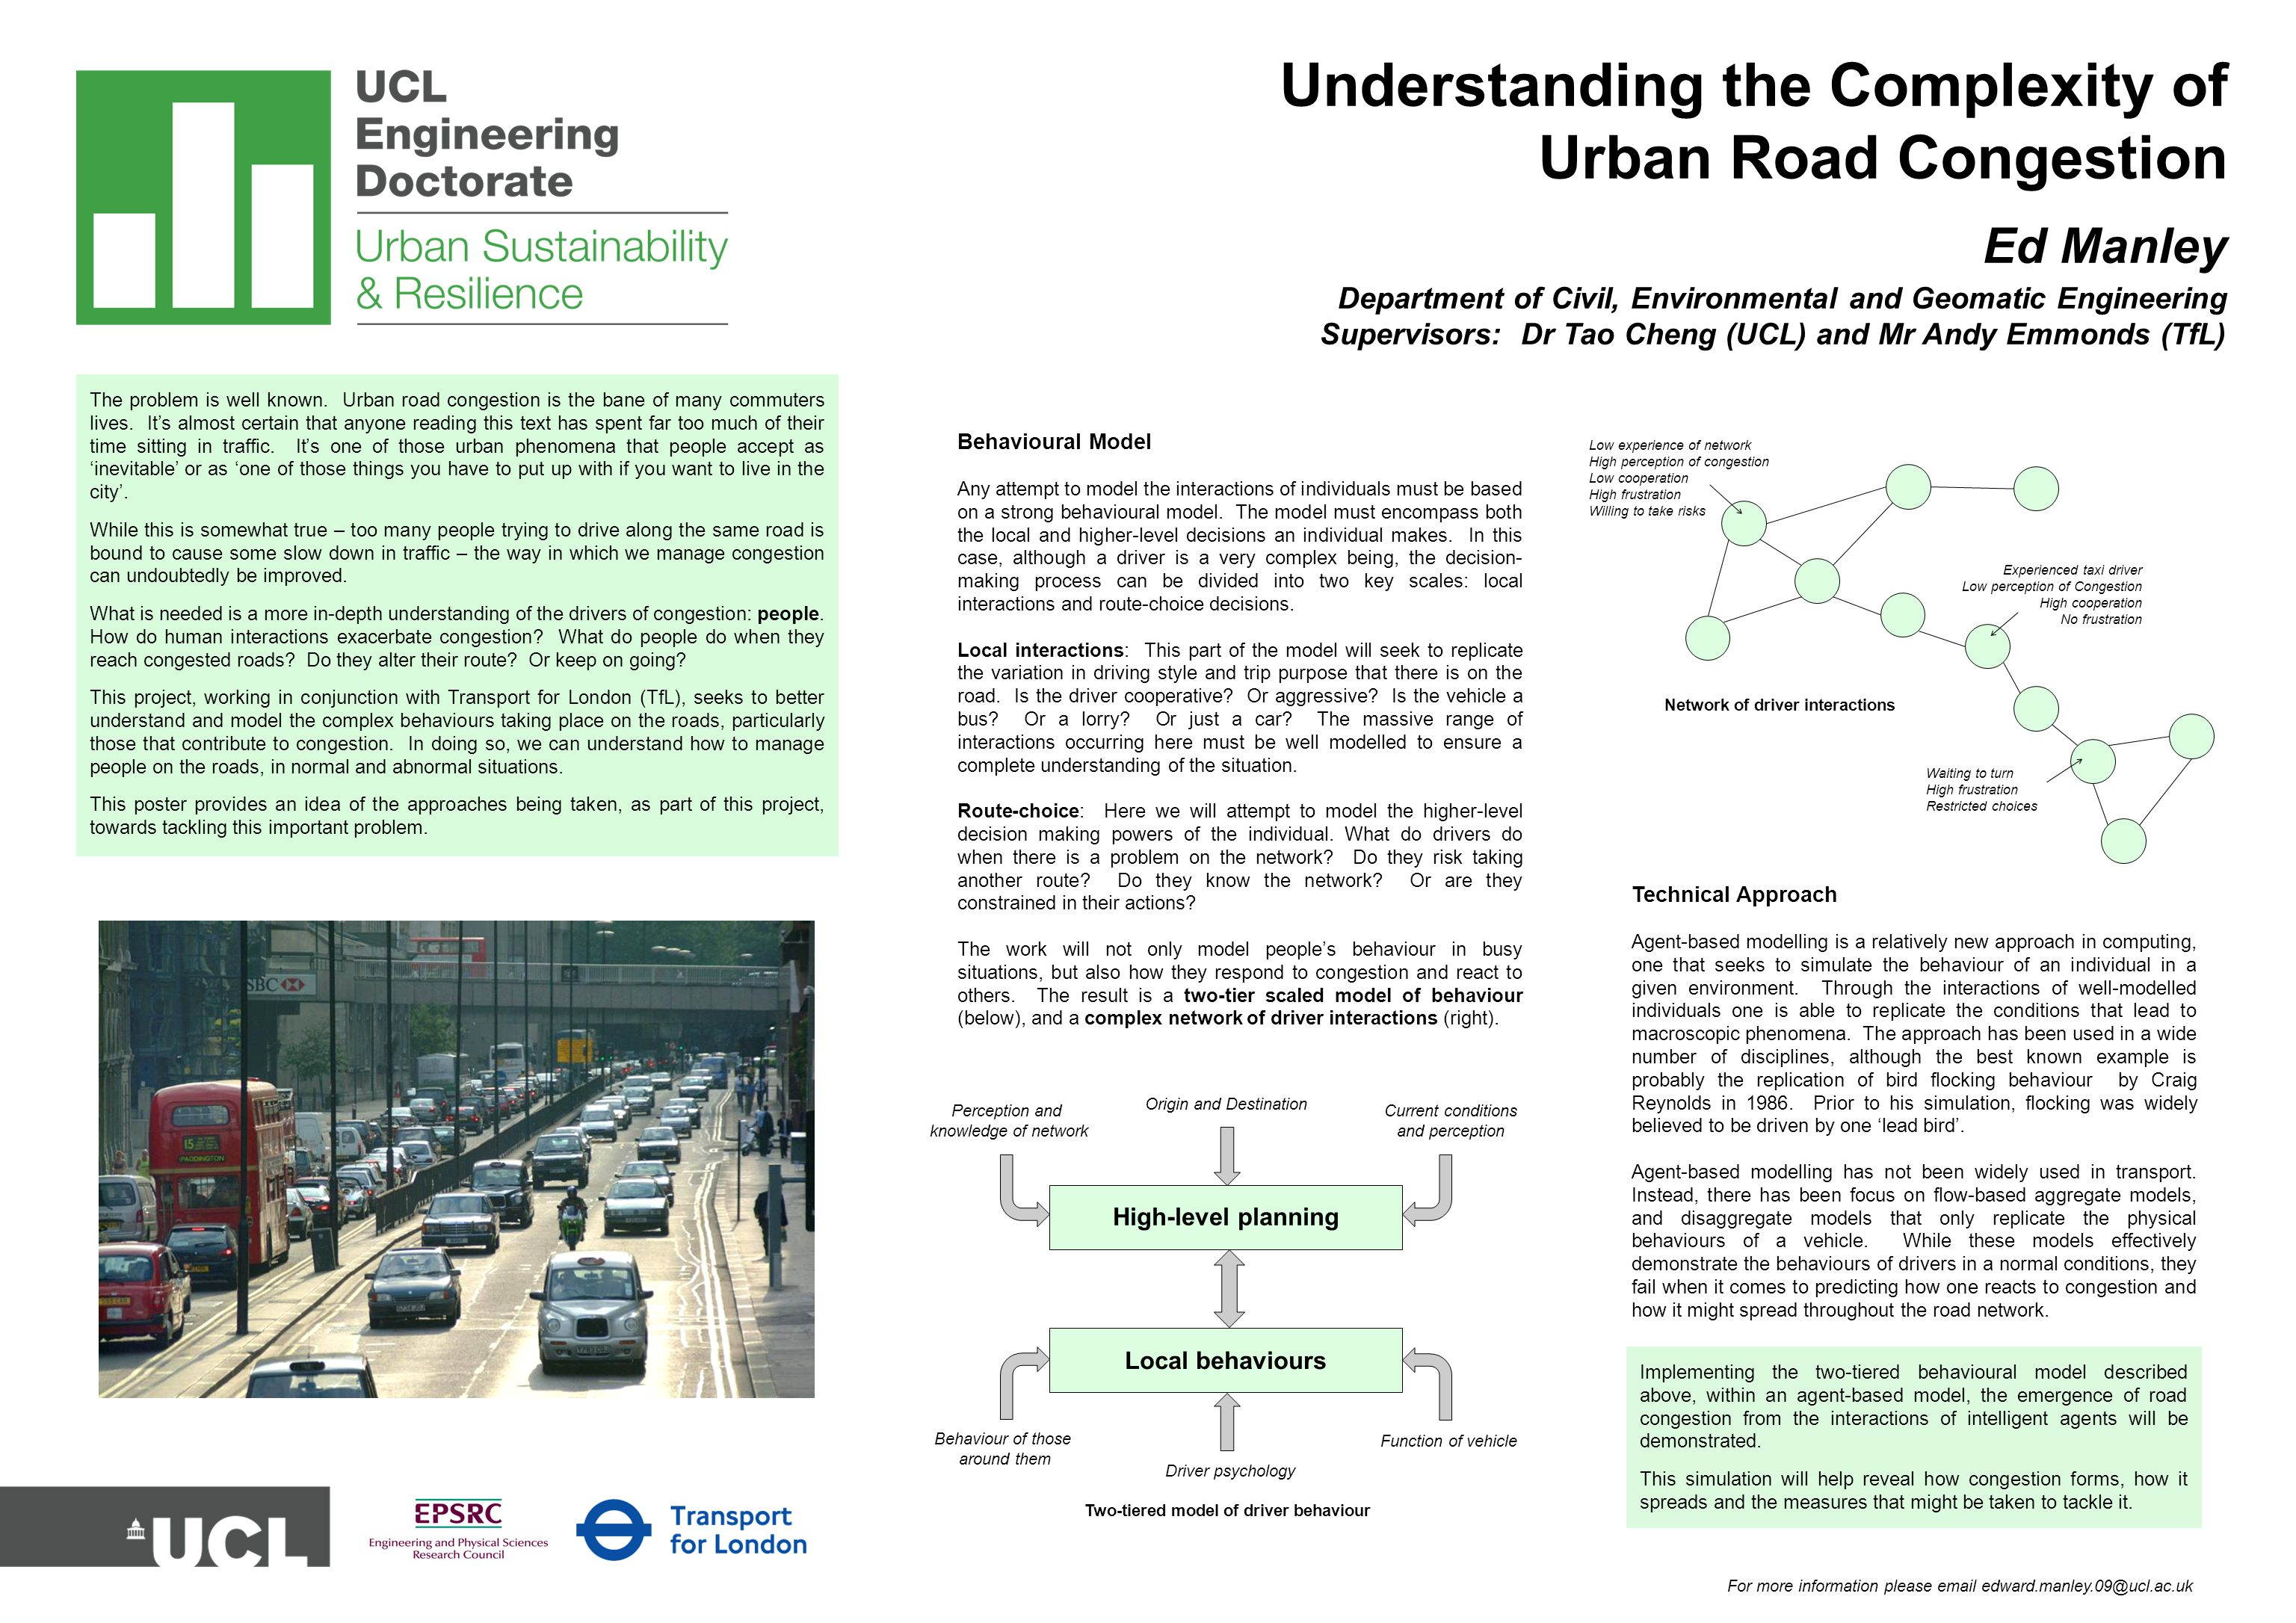 Understanding the Complexity of Urban Road Congestion Ed Manley Department of Civil, Environmental and Geomatic Engineering Supervisors: Dr Tao Cheng (UCL) and Mr Andy Emmonds (TfL) The problem is well known.